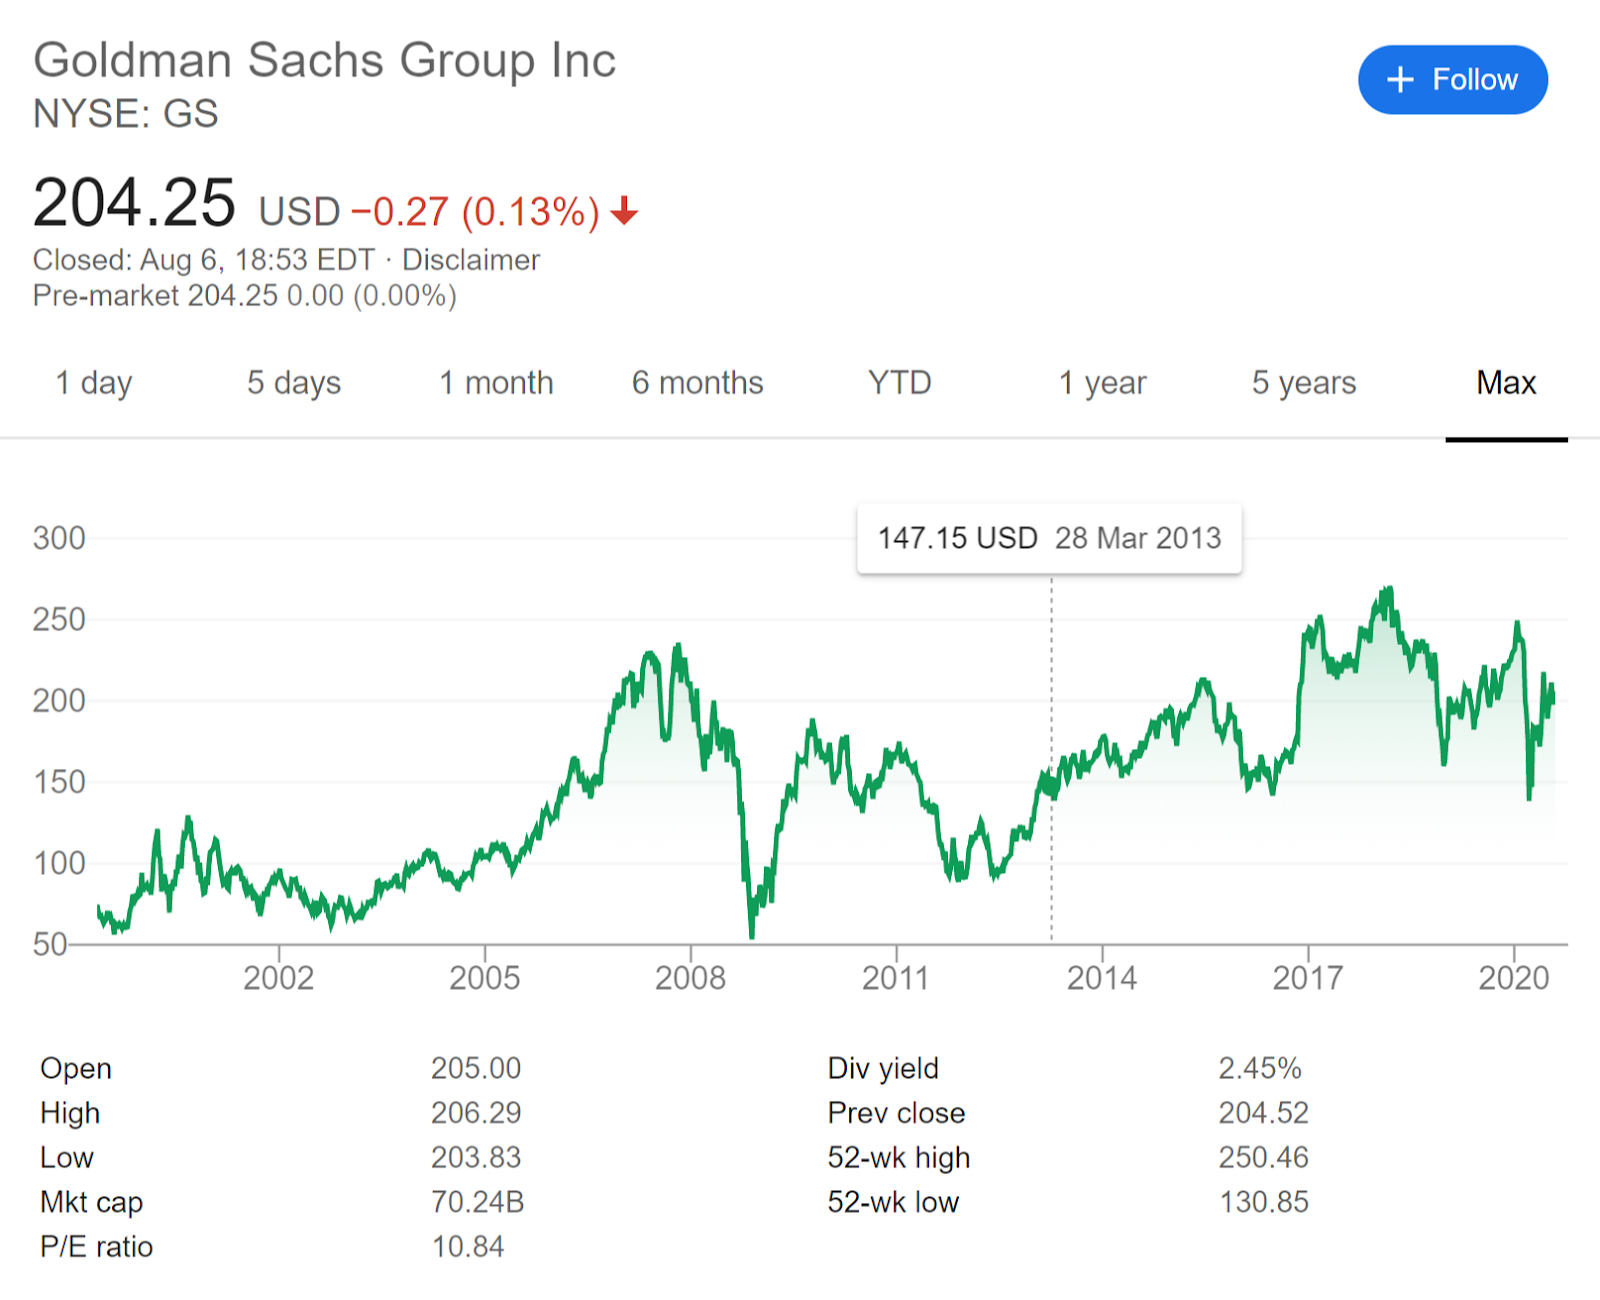 Chart illustrating the long-term stock price of Goldman Sachs Group Inc. Source: Google